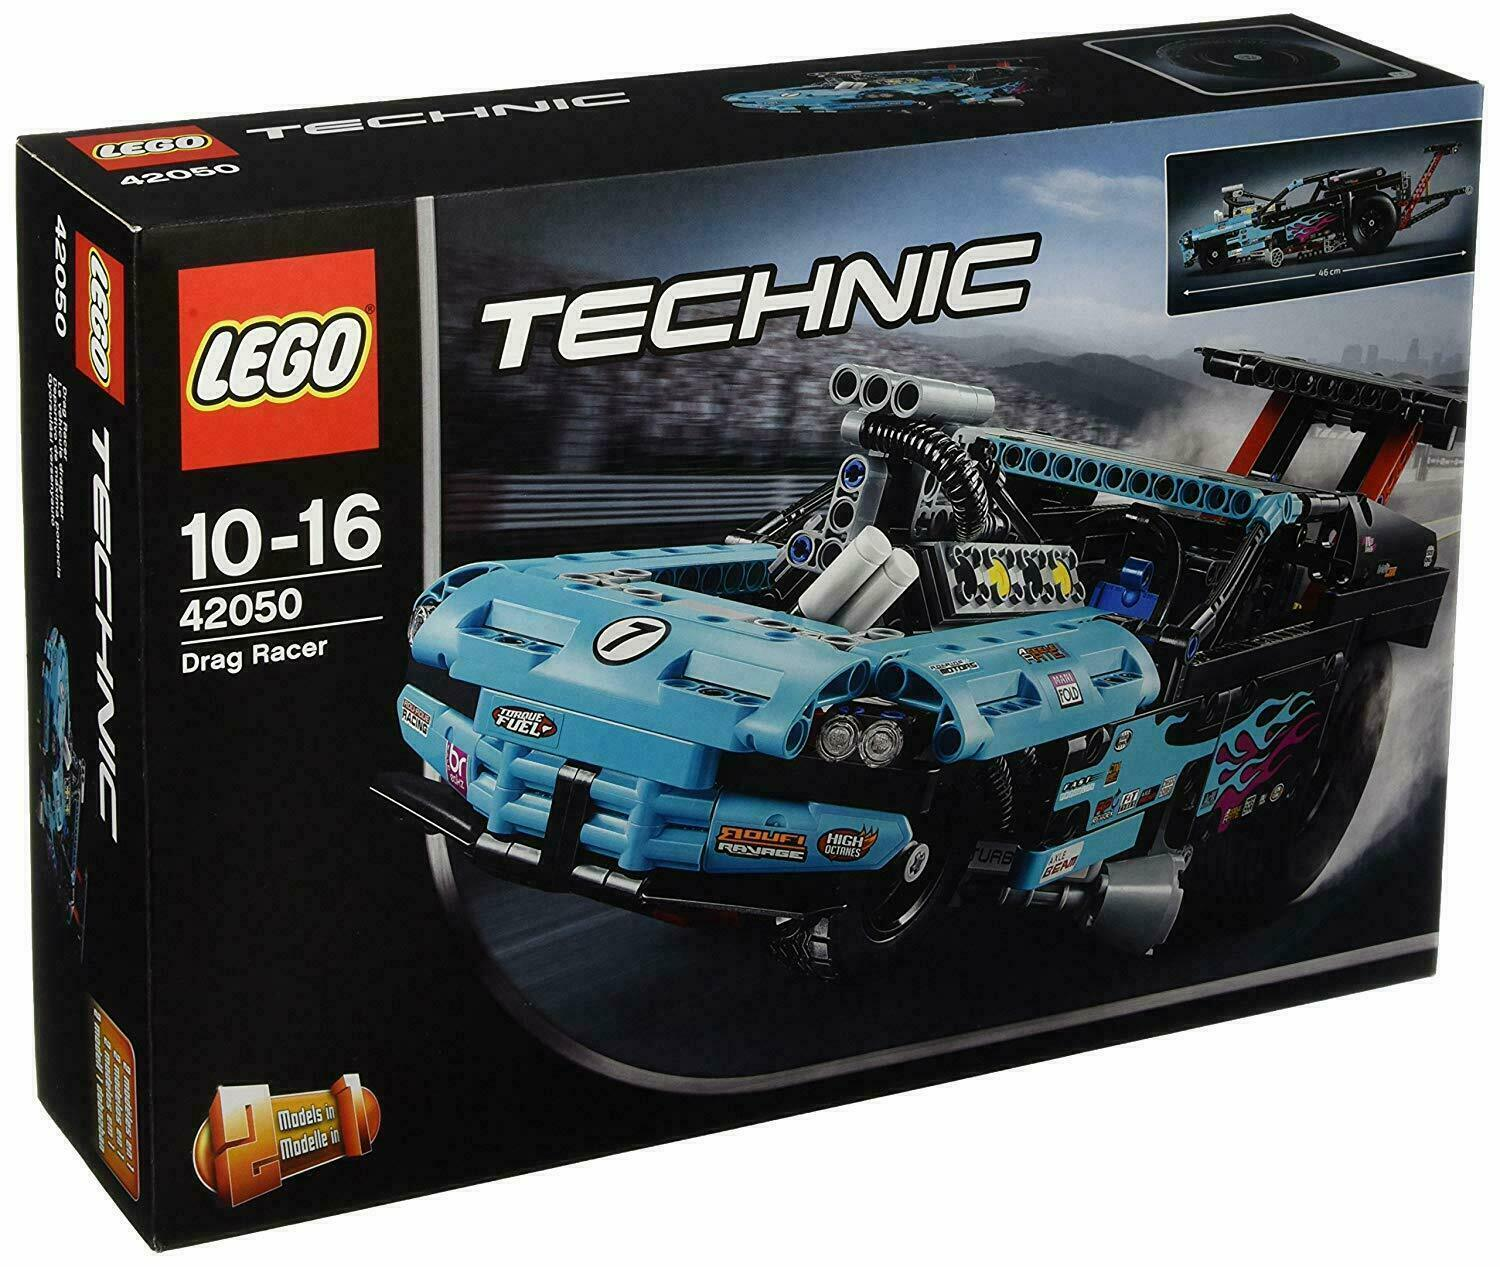 LEGO - 42050 - Technic Drag Racer Car - BOXED WITH INSTRUCTIONS - NOW RARE